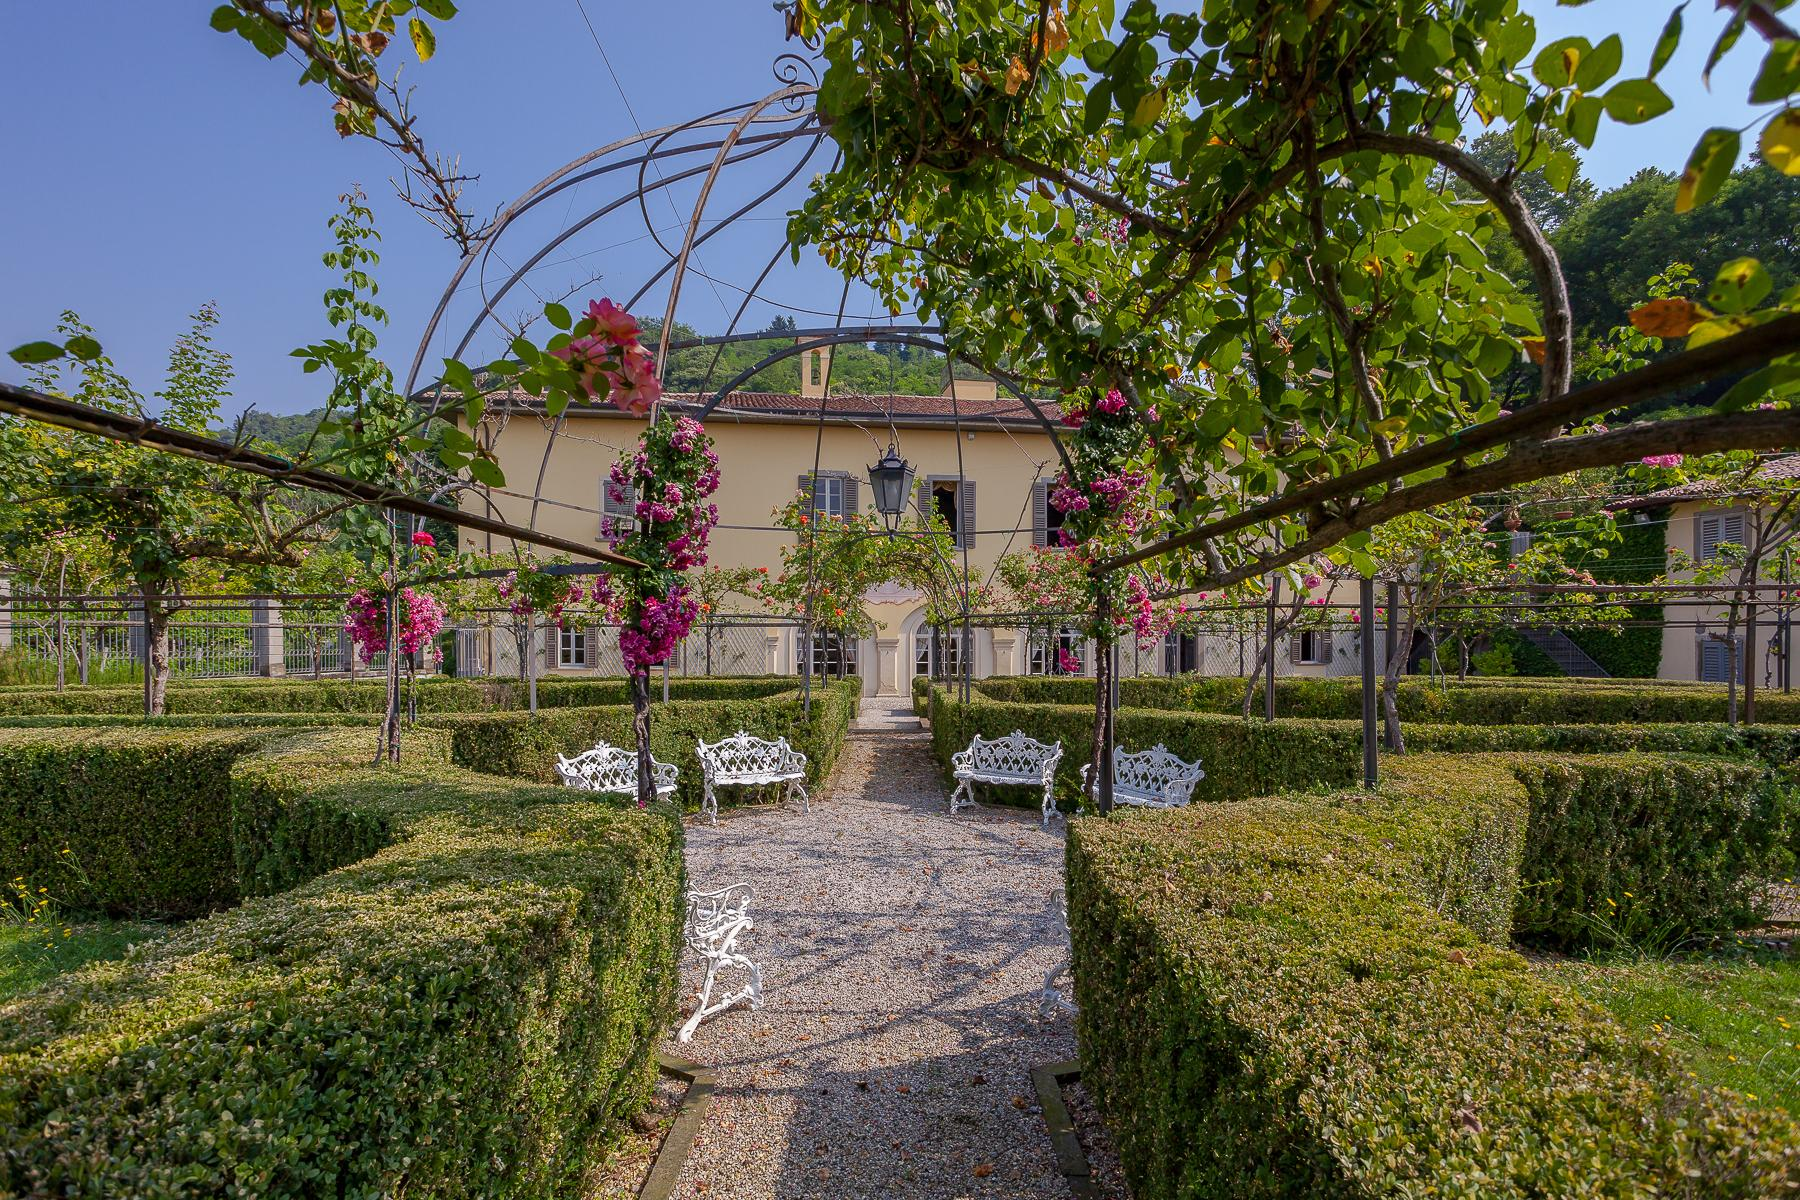 Charming villa with Italian-style garden and park - 1